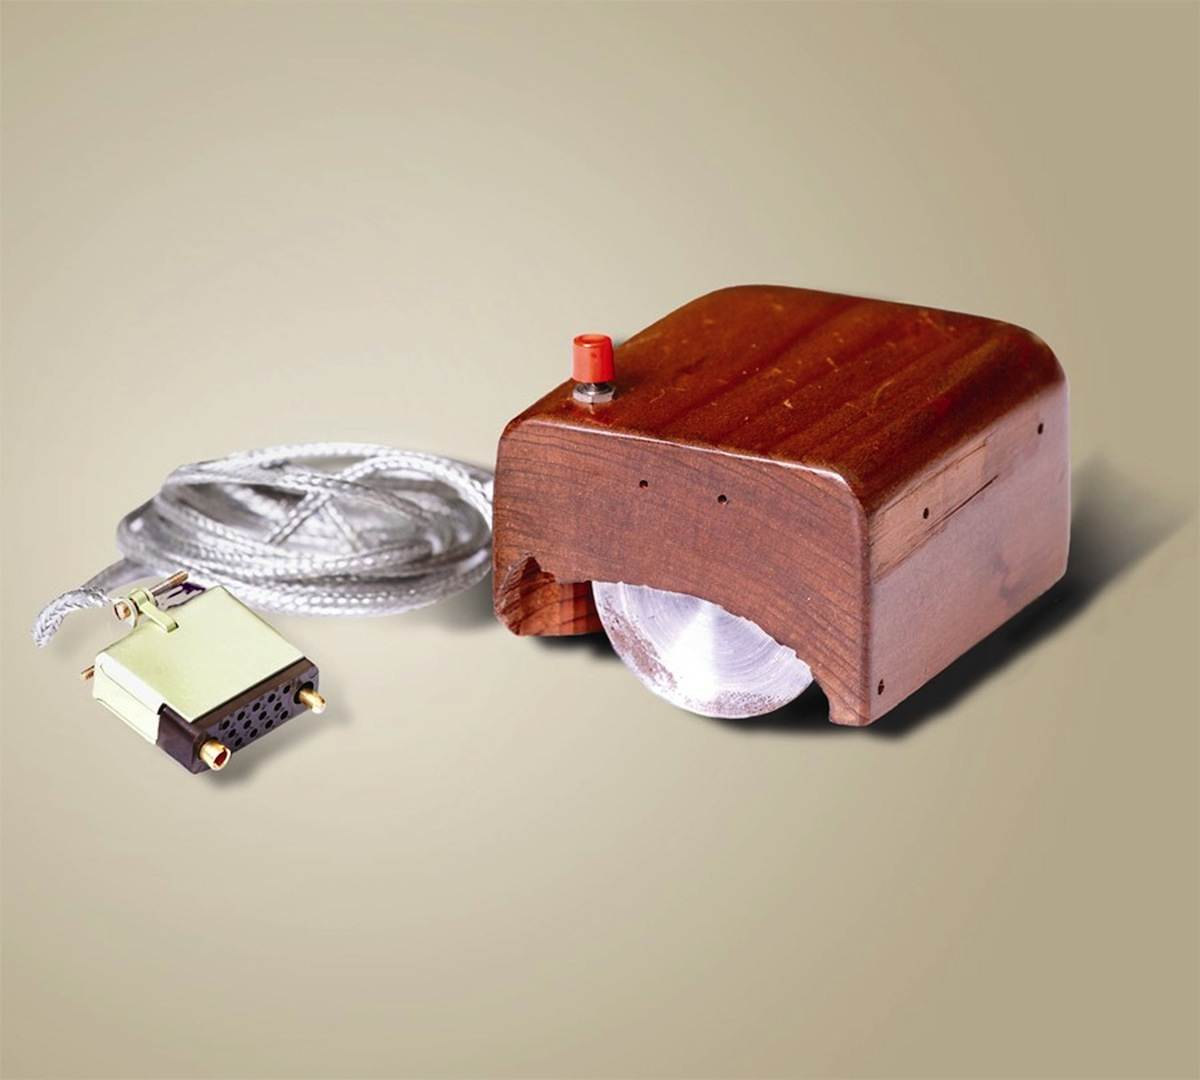 A prototype of the first mouse, from 1968